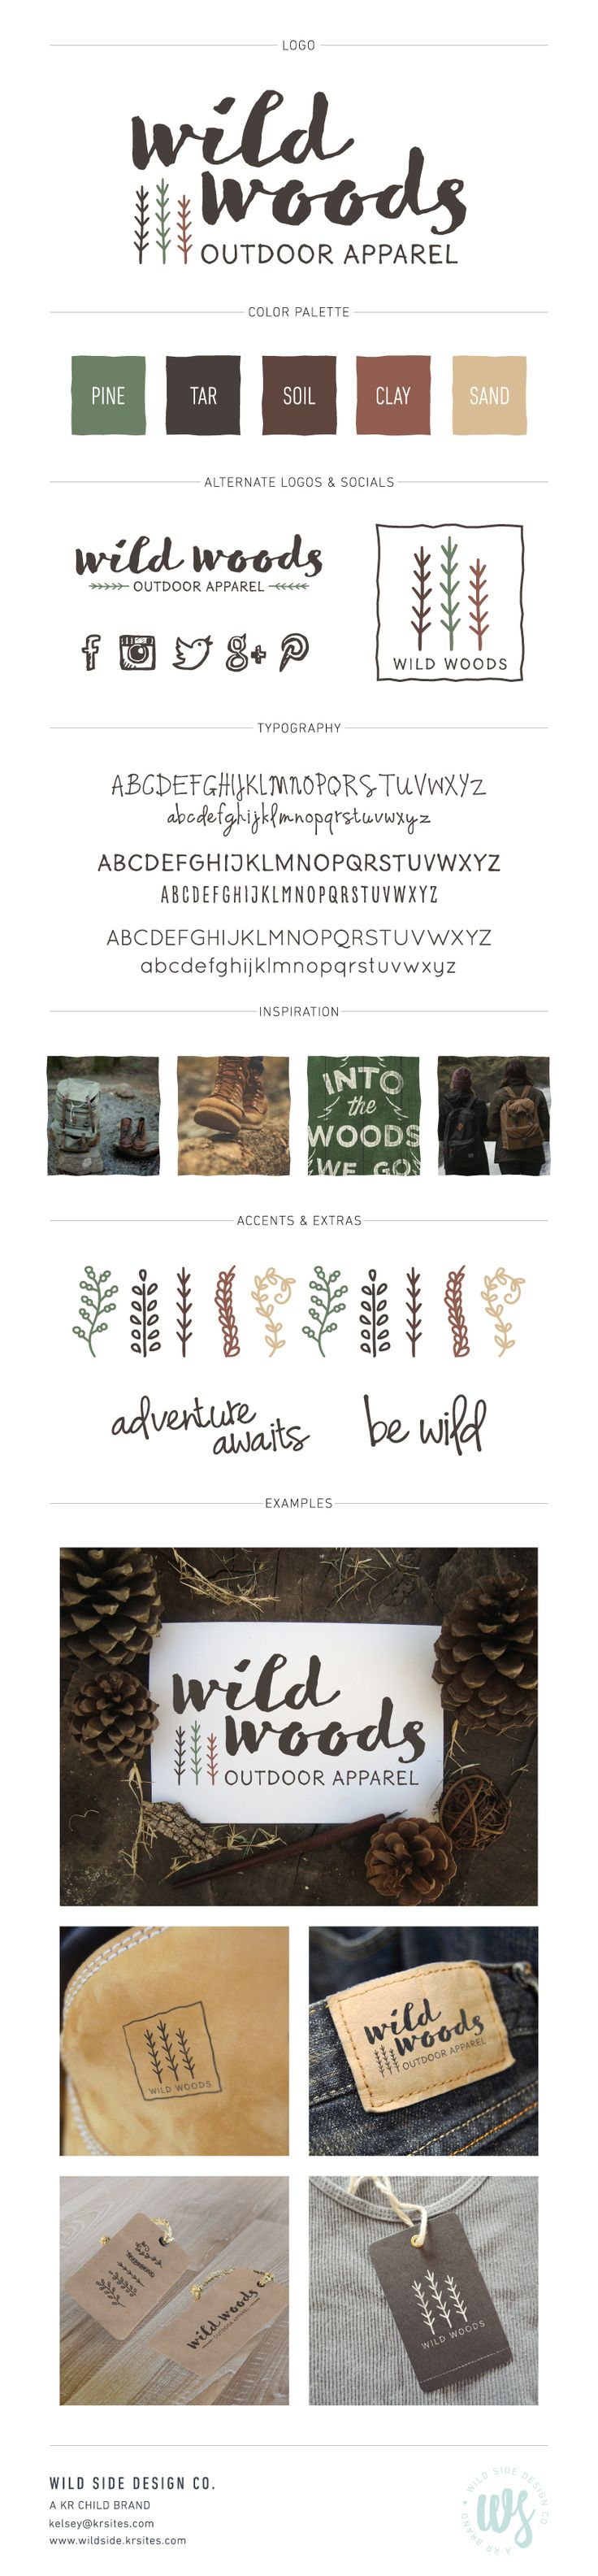 Brand Launch | Brand Style Board | Outdoor Apparel Branding | Wild Woods Brand Design by Wild Side Design Co. | #brand #print www.wildside.krsites.com